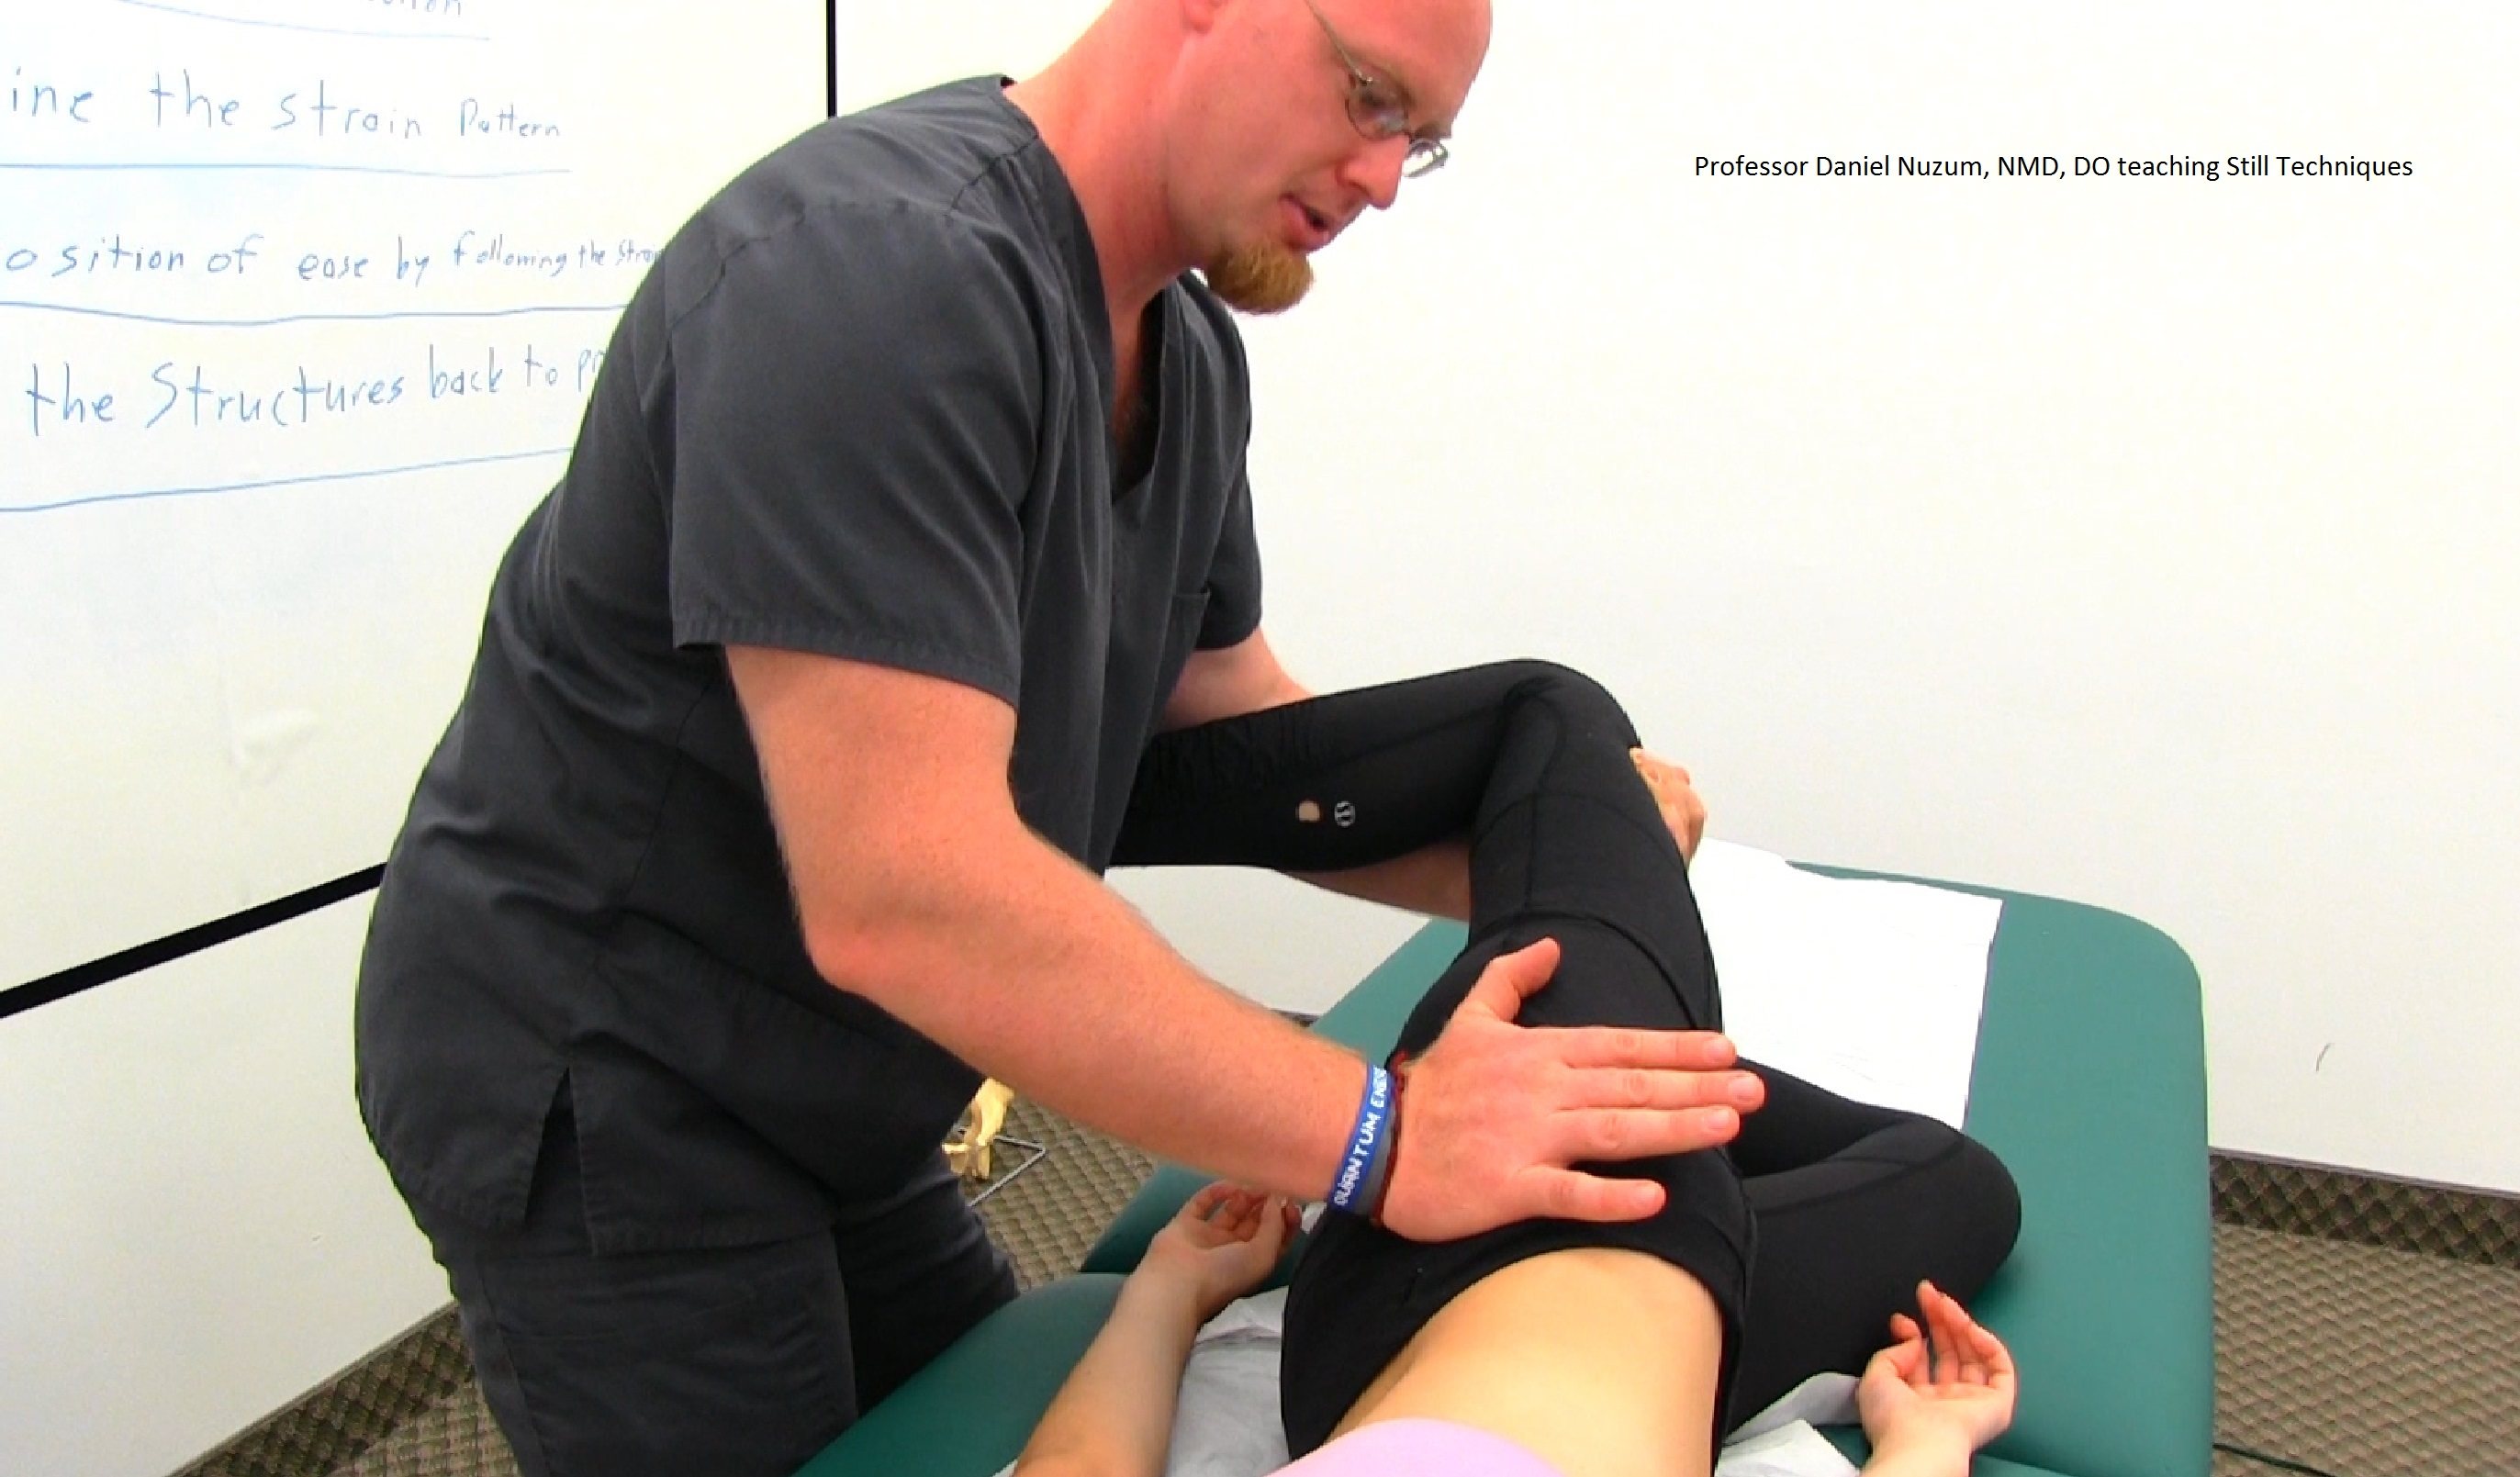 Why do NZ-based Osteopaths Break the Law by Calling themselves Doctors?